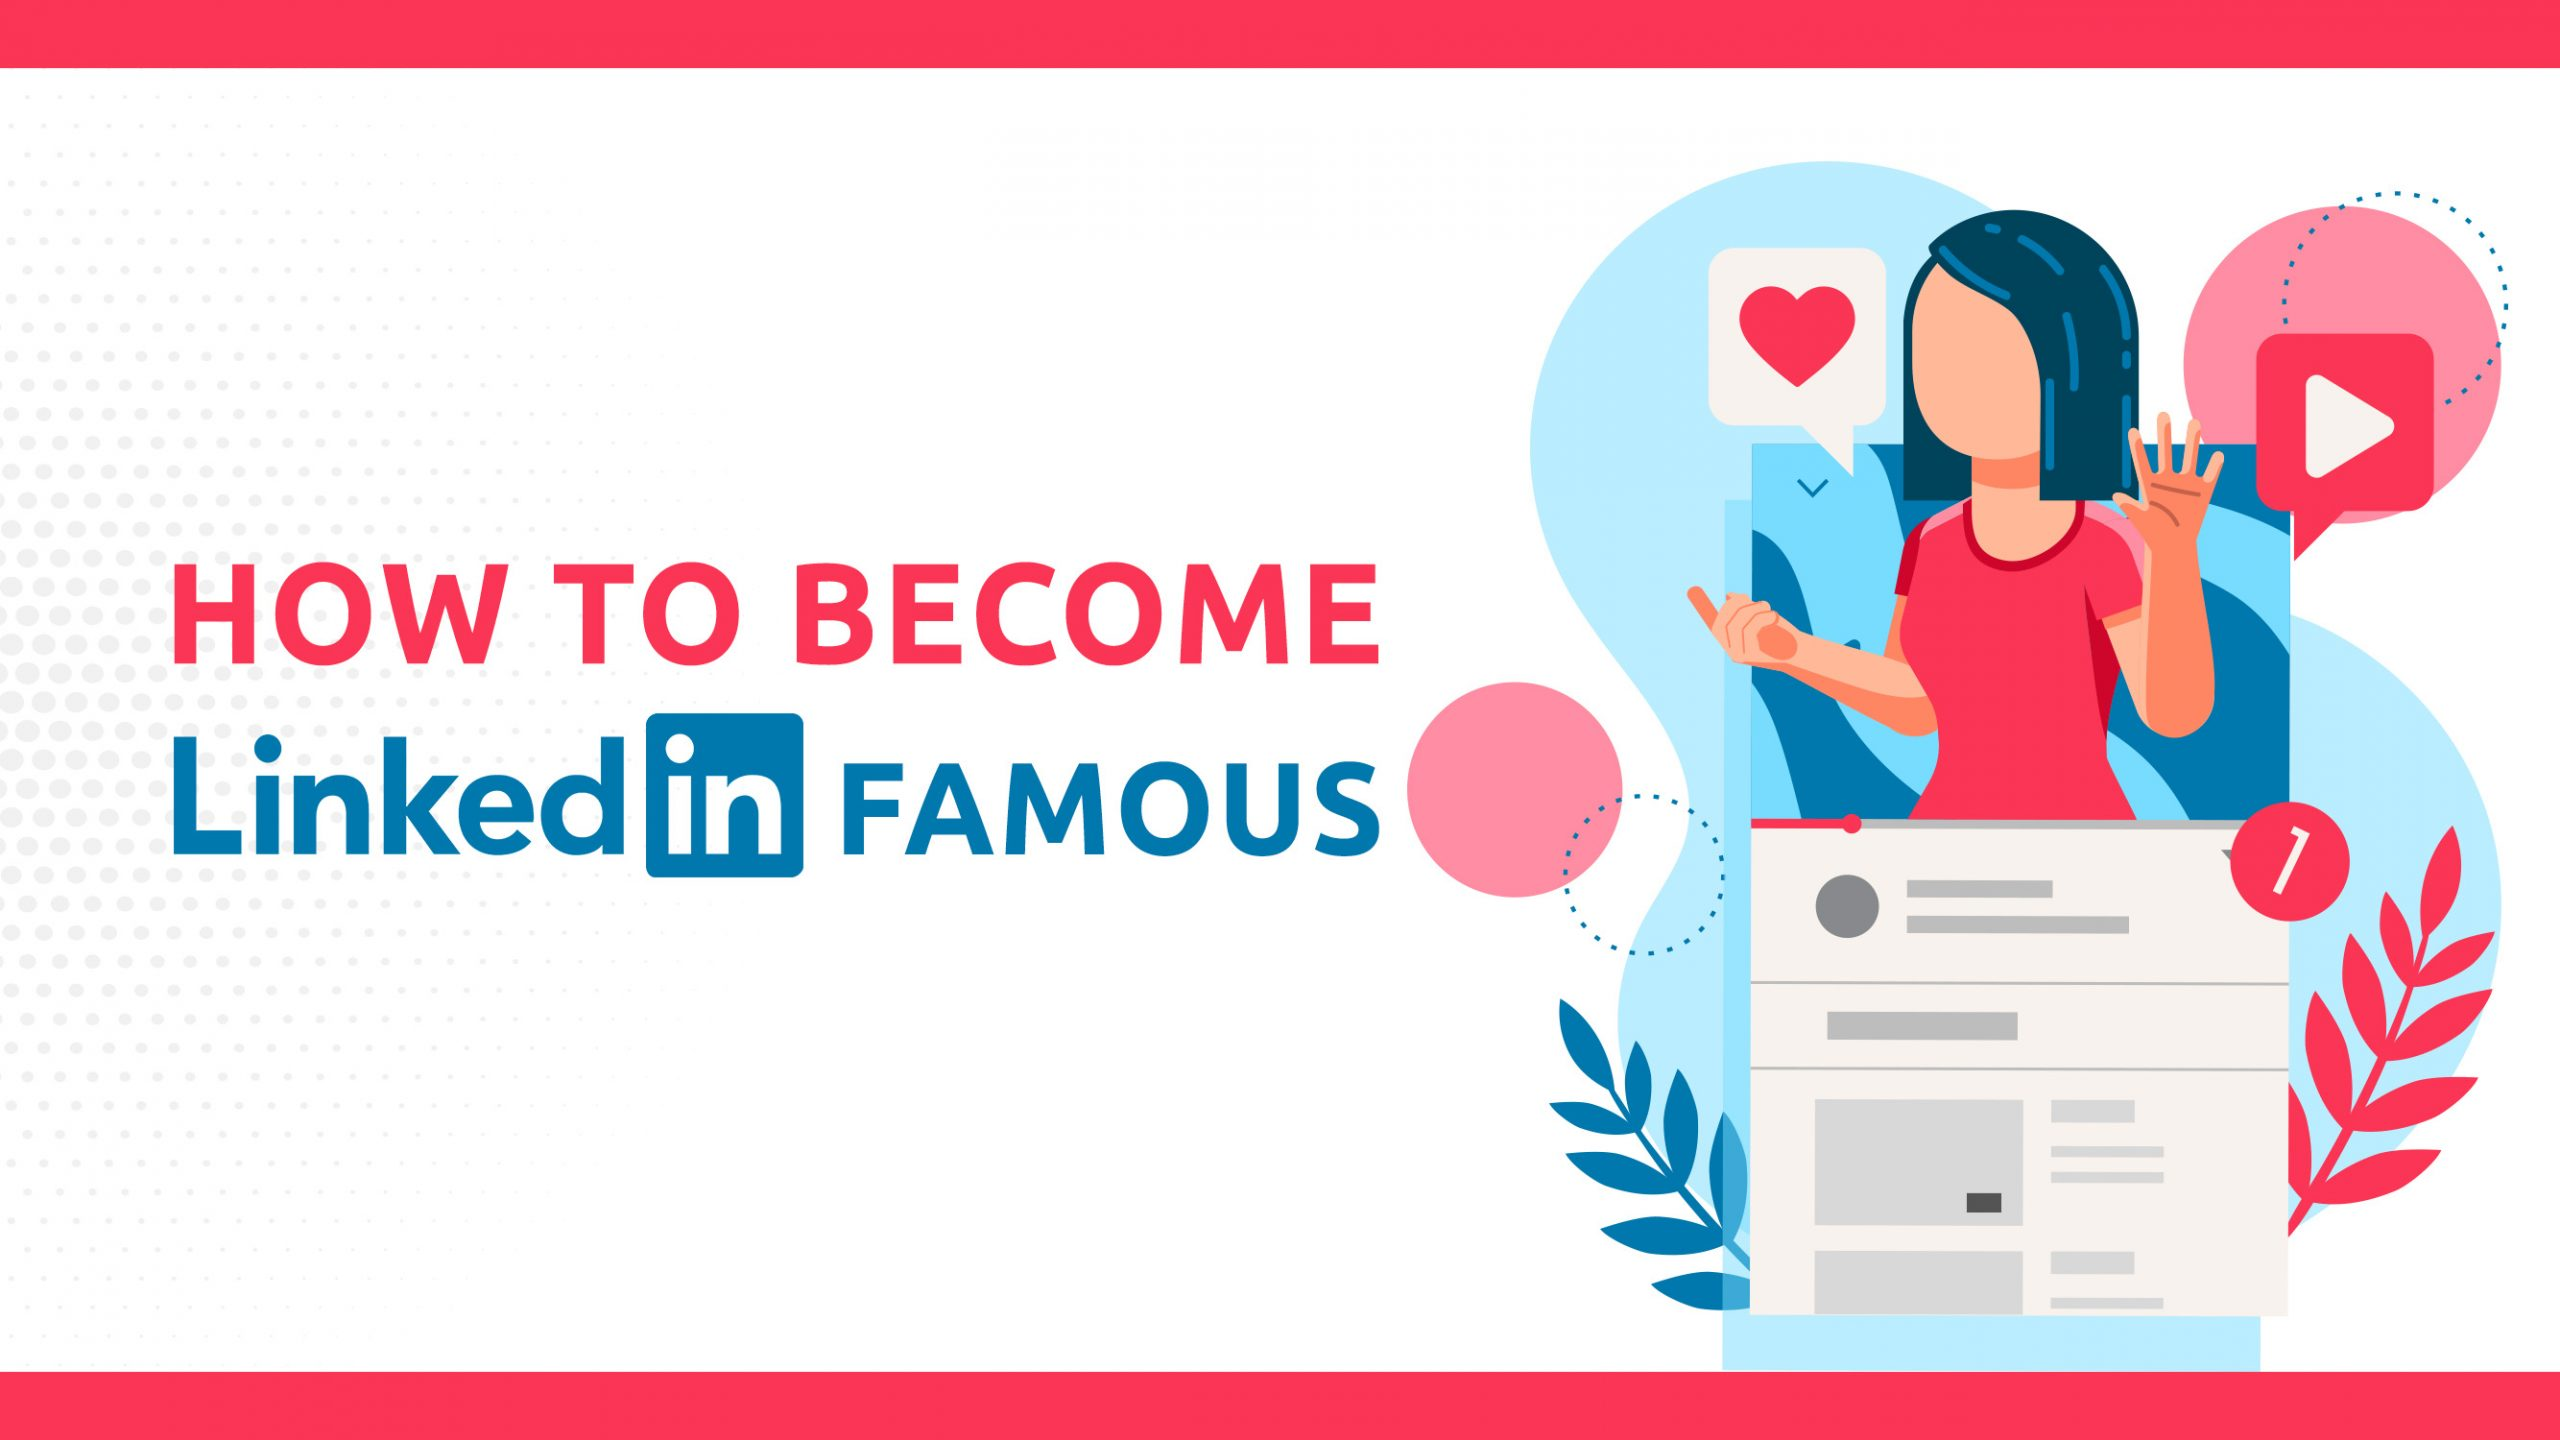 How To Become LinkedIn Famous